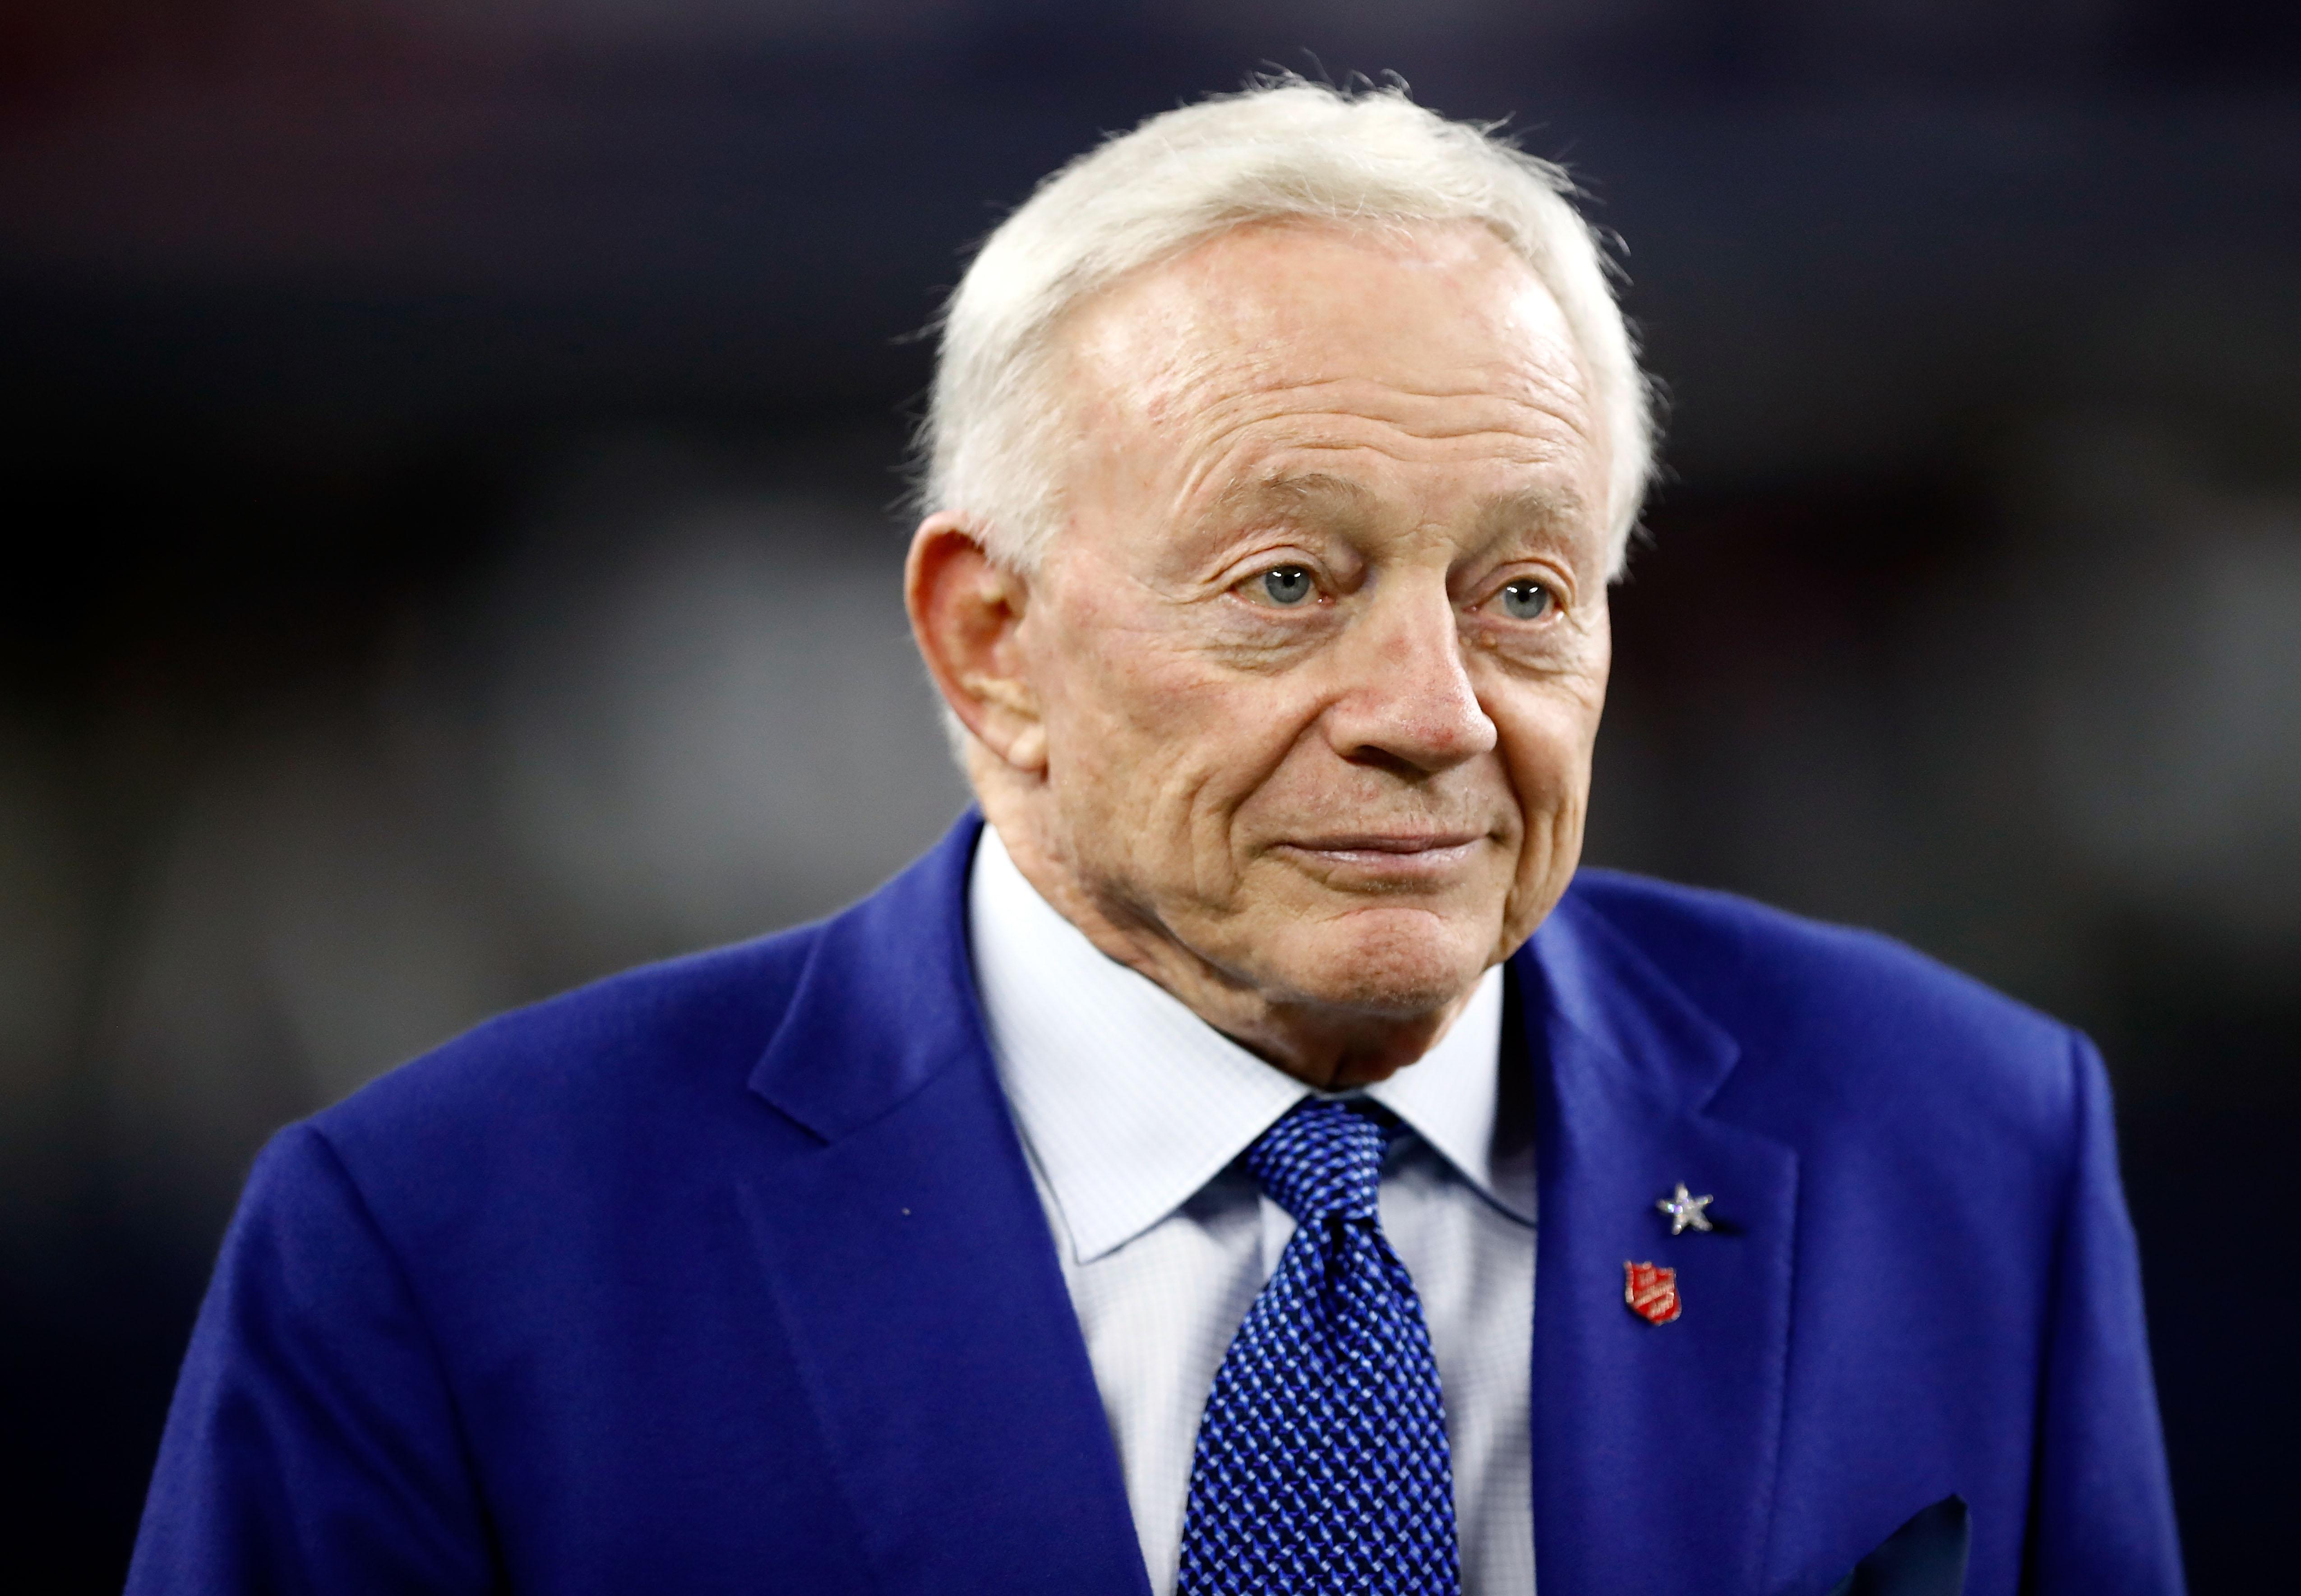 Jerry Jones refuses to comment after wearing a hat during the national anthem